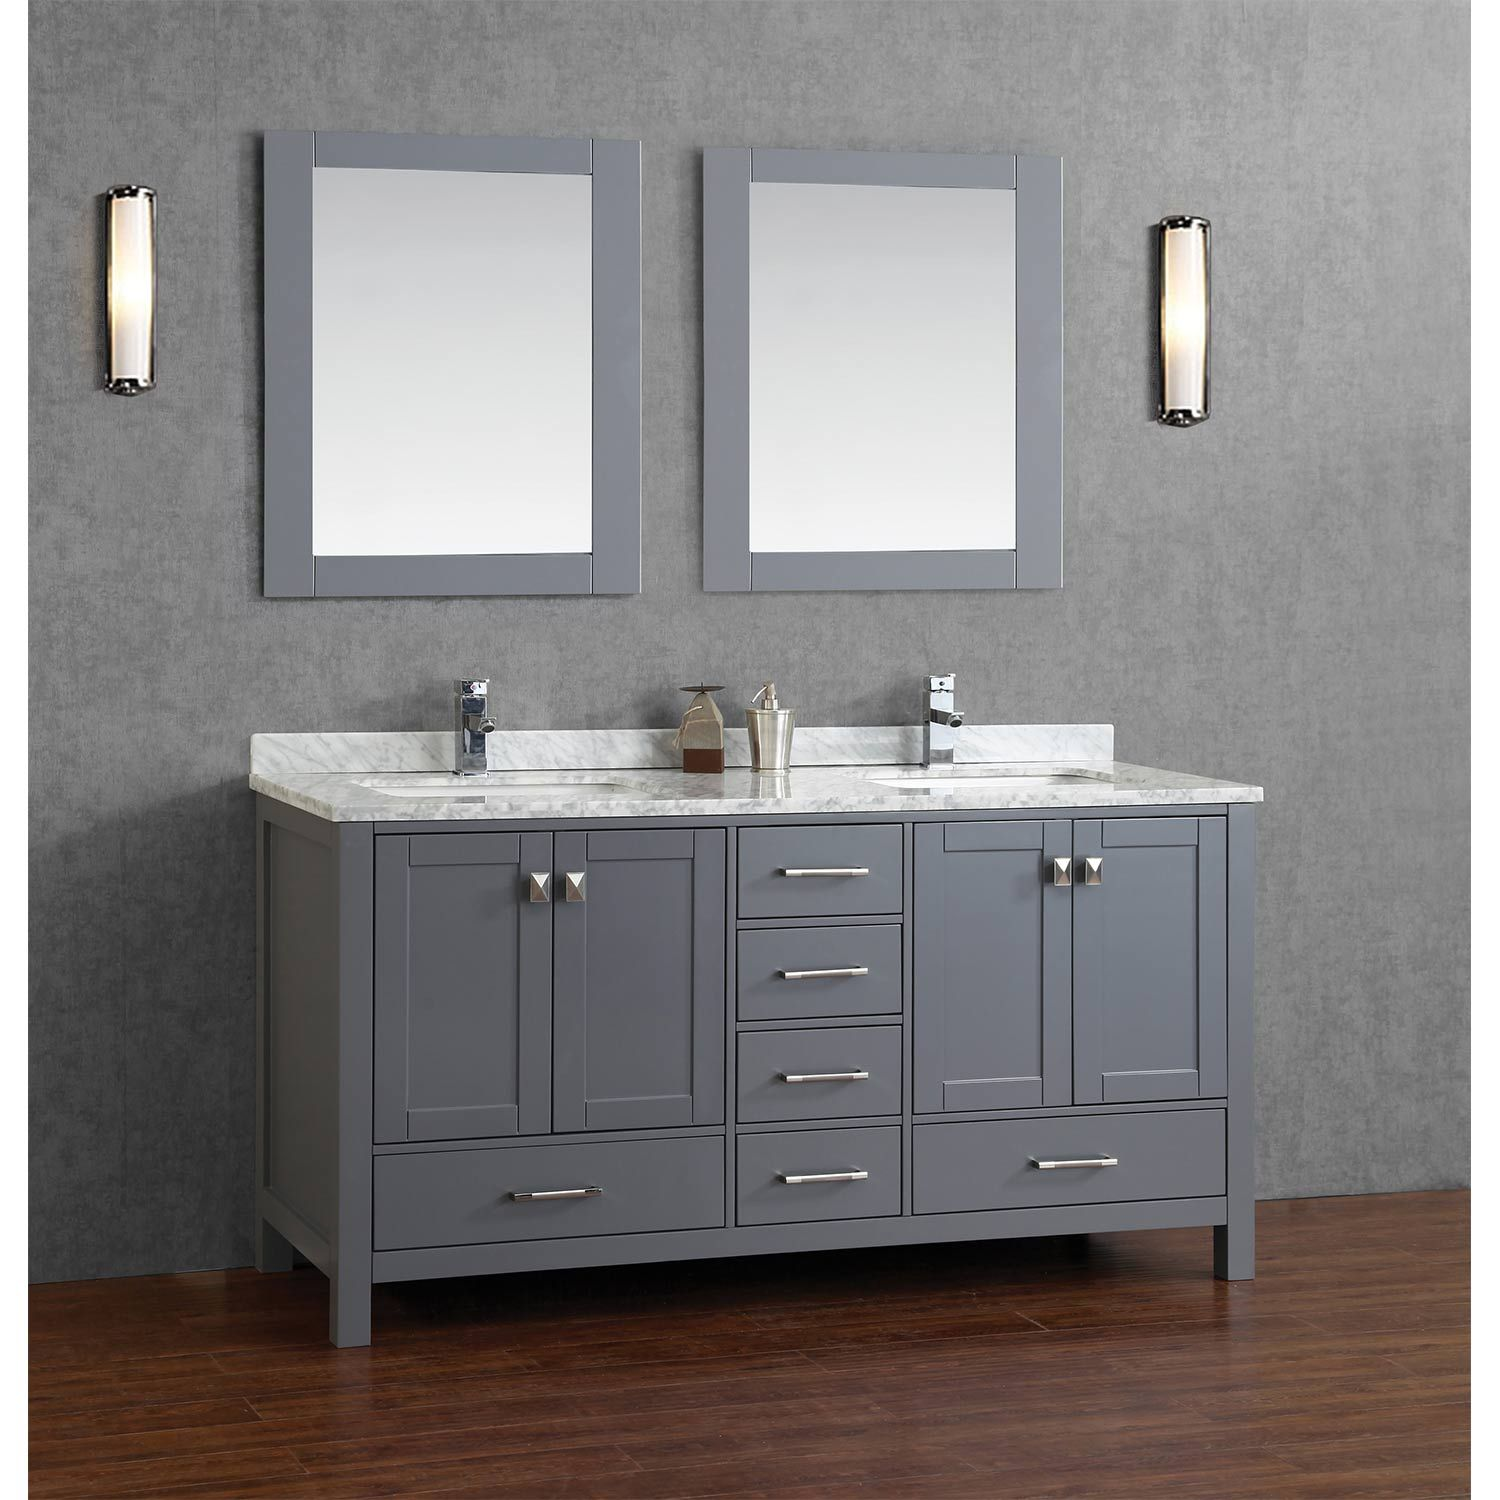 Buy Vincent 72 Inch Solid Wood Double Bathroom Vanity In Charcoal Beauteous 72 Inch Bathroom Vanity Double Sink Design Decoration